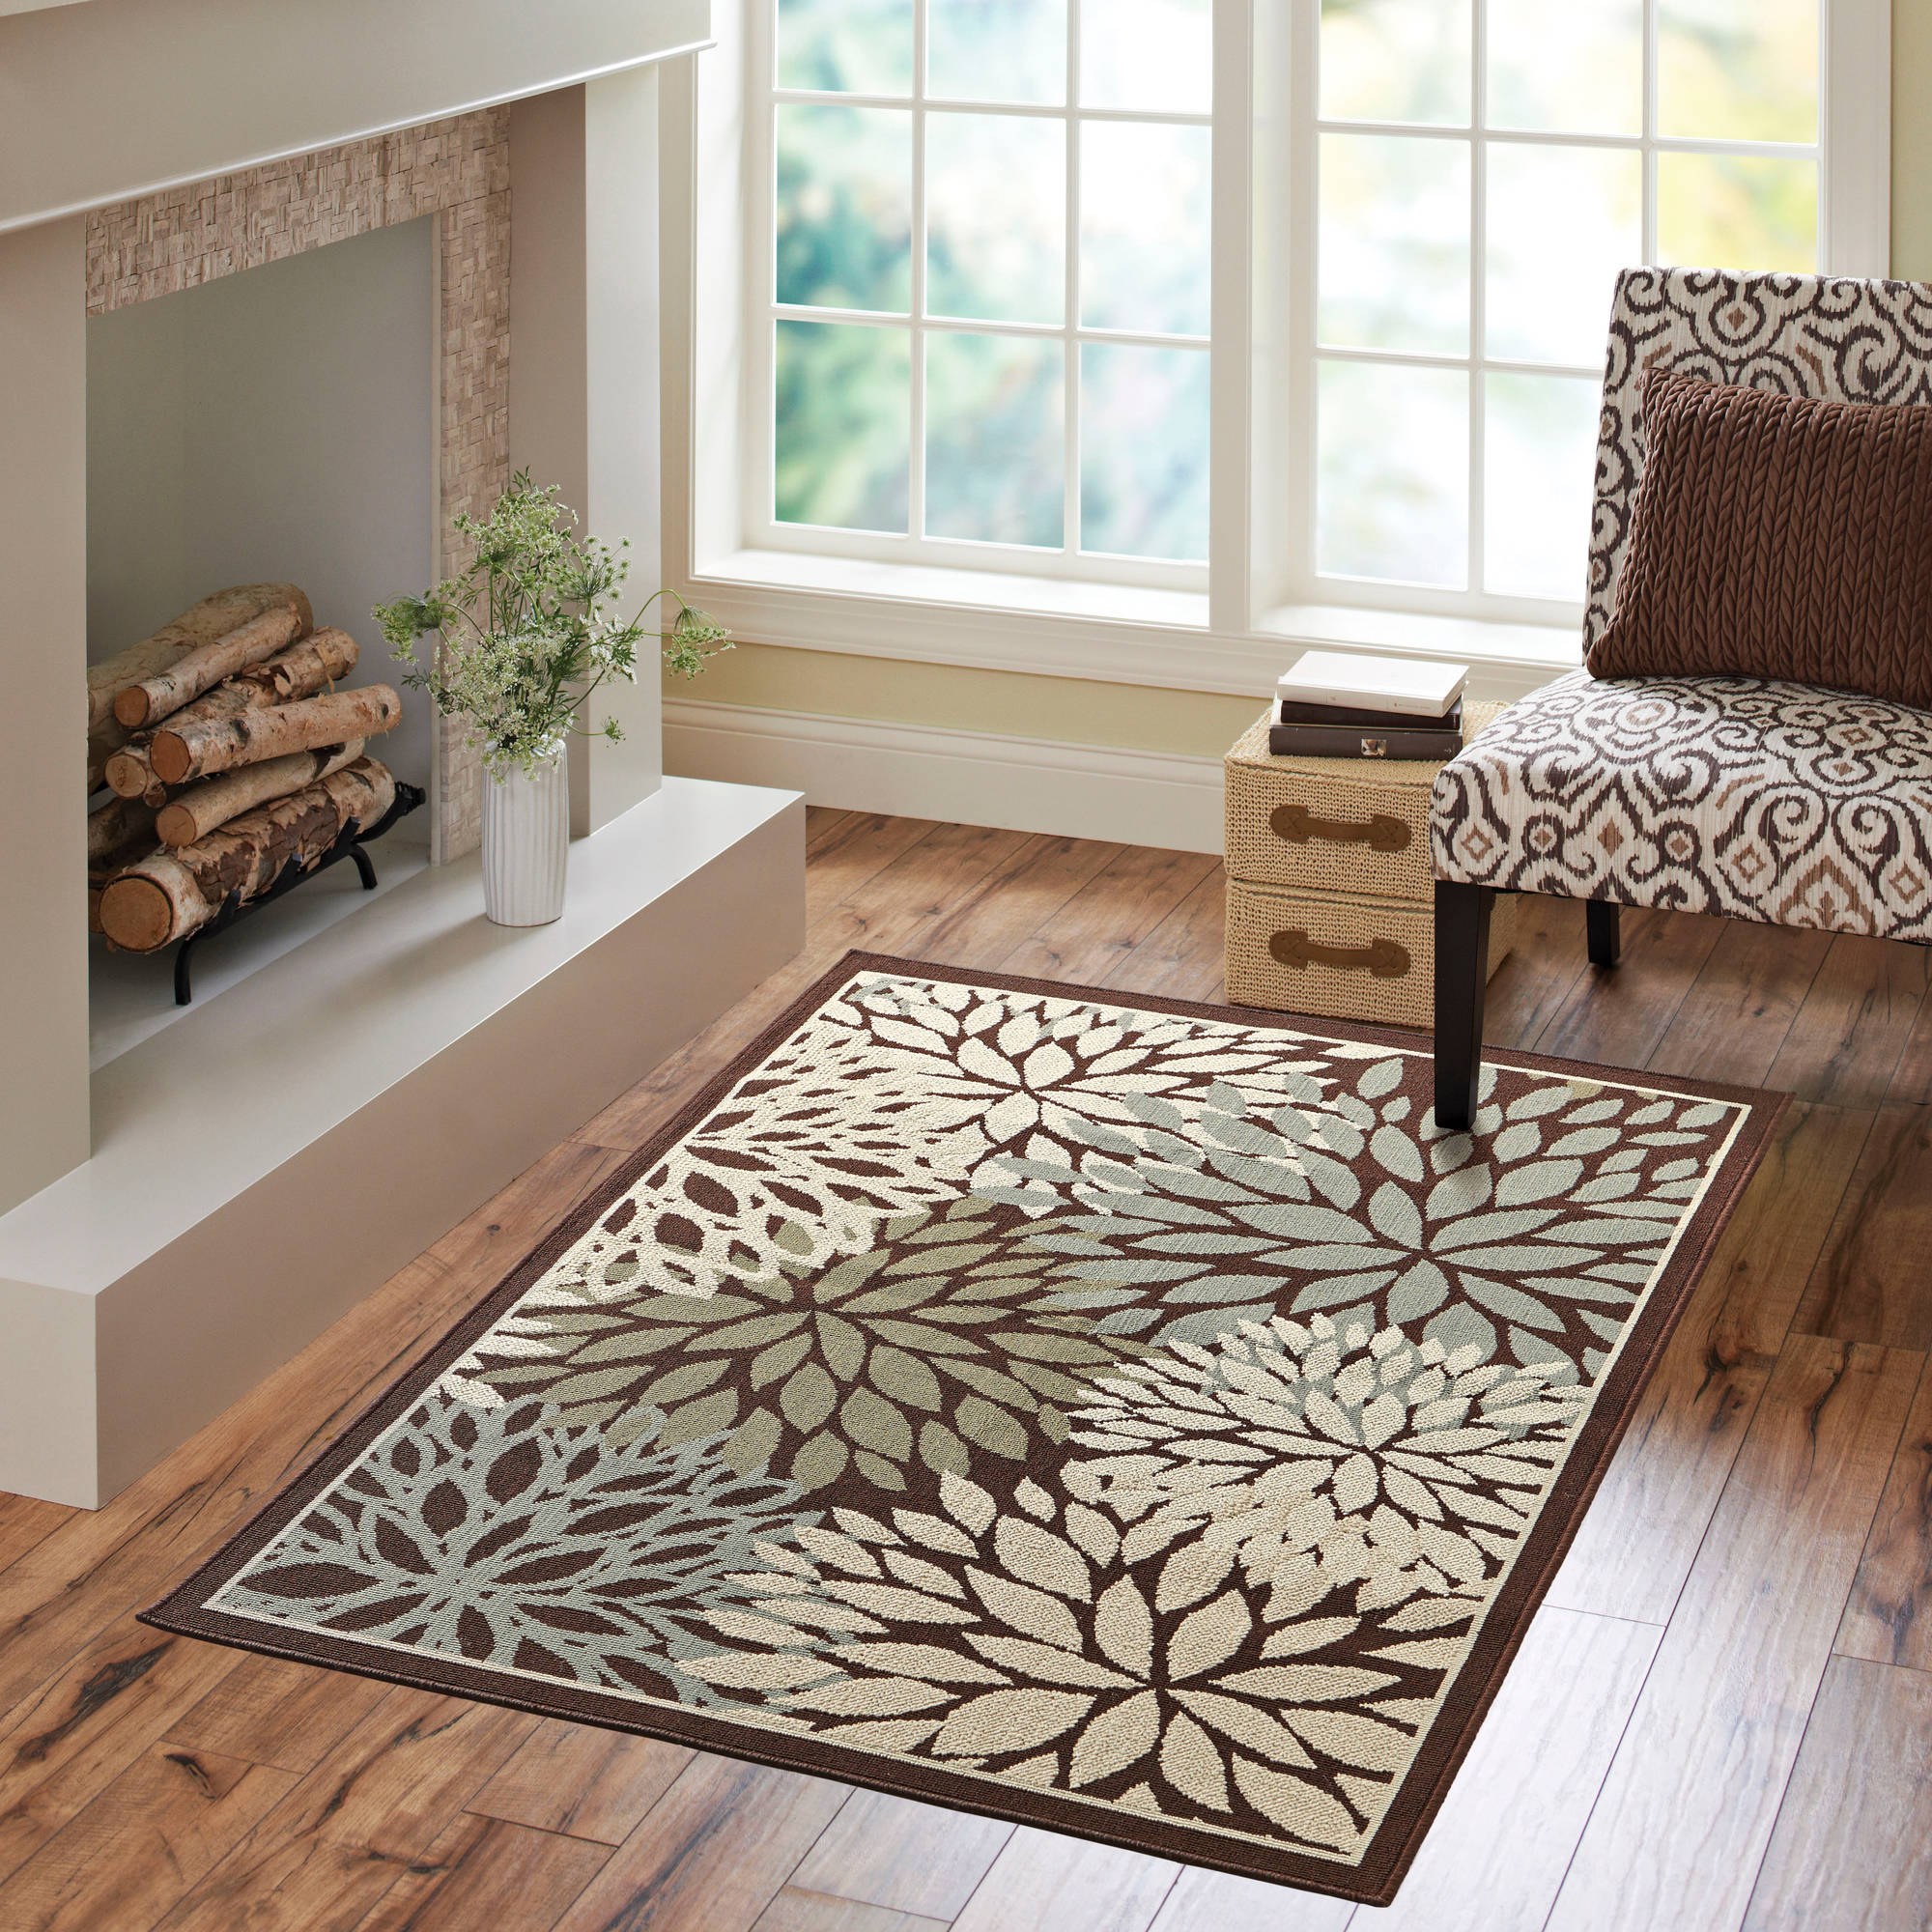 Safavieh Mystique Willow Power Loomed Area Rug or Runner  Grey Multi     Safavieh Mystique Willow Power Loomed Area Rug or Runner  Grey Multi    Walmart com